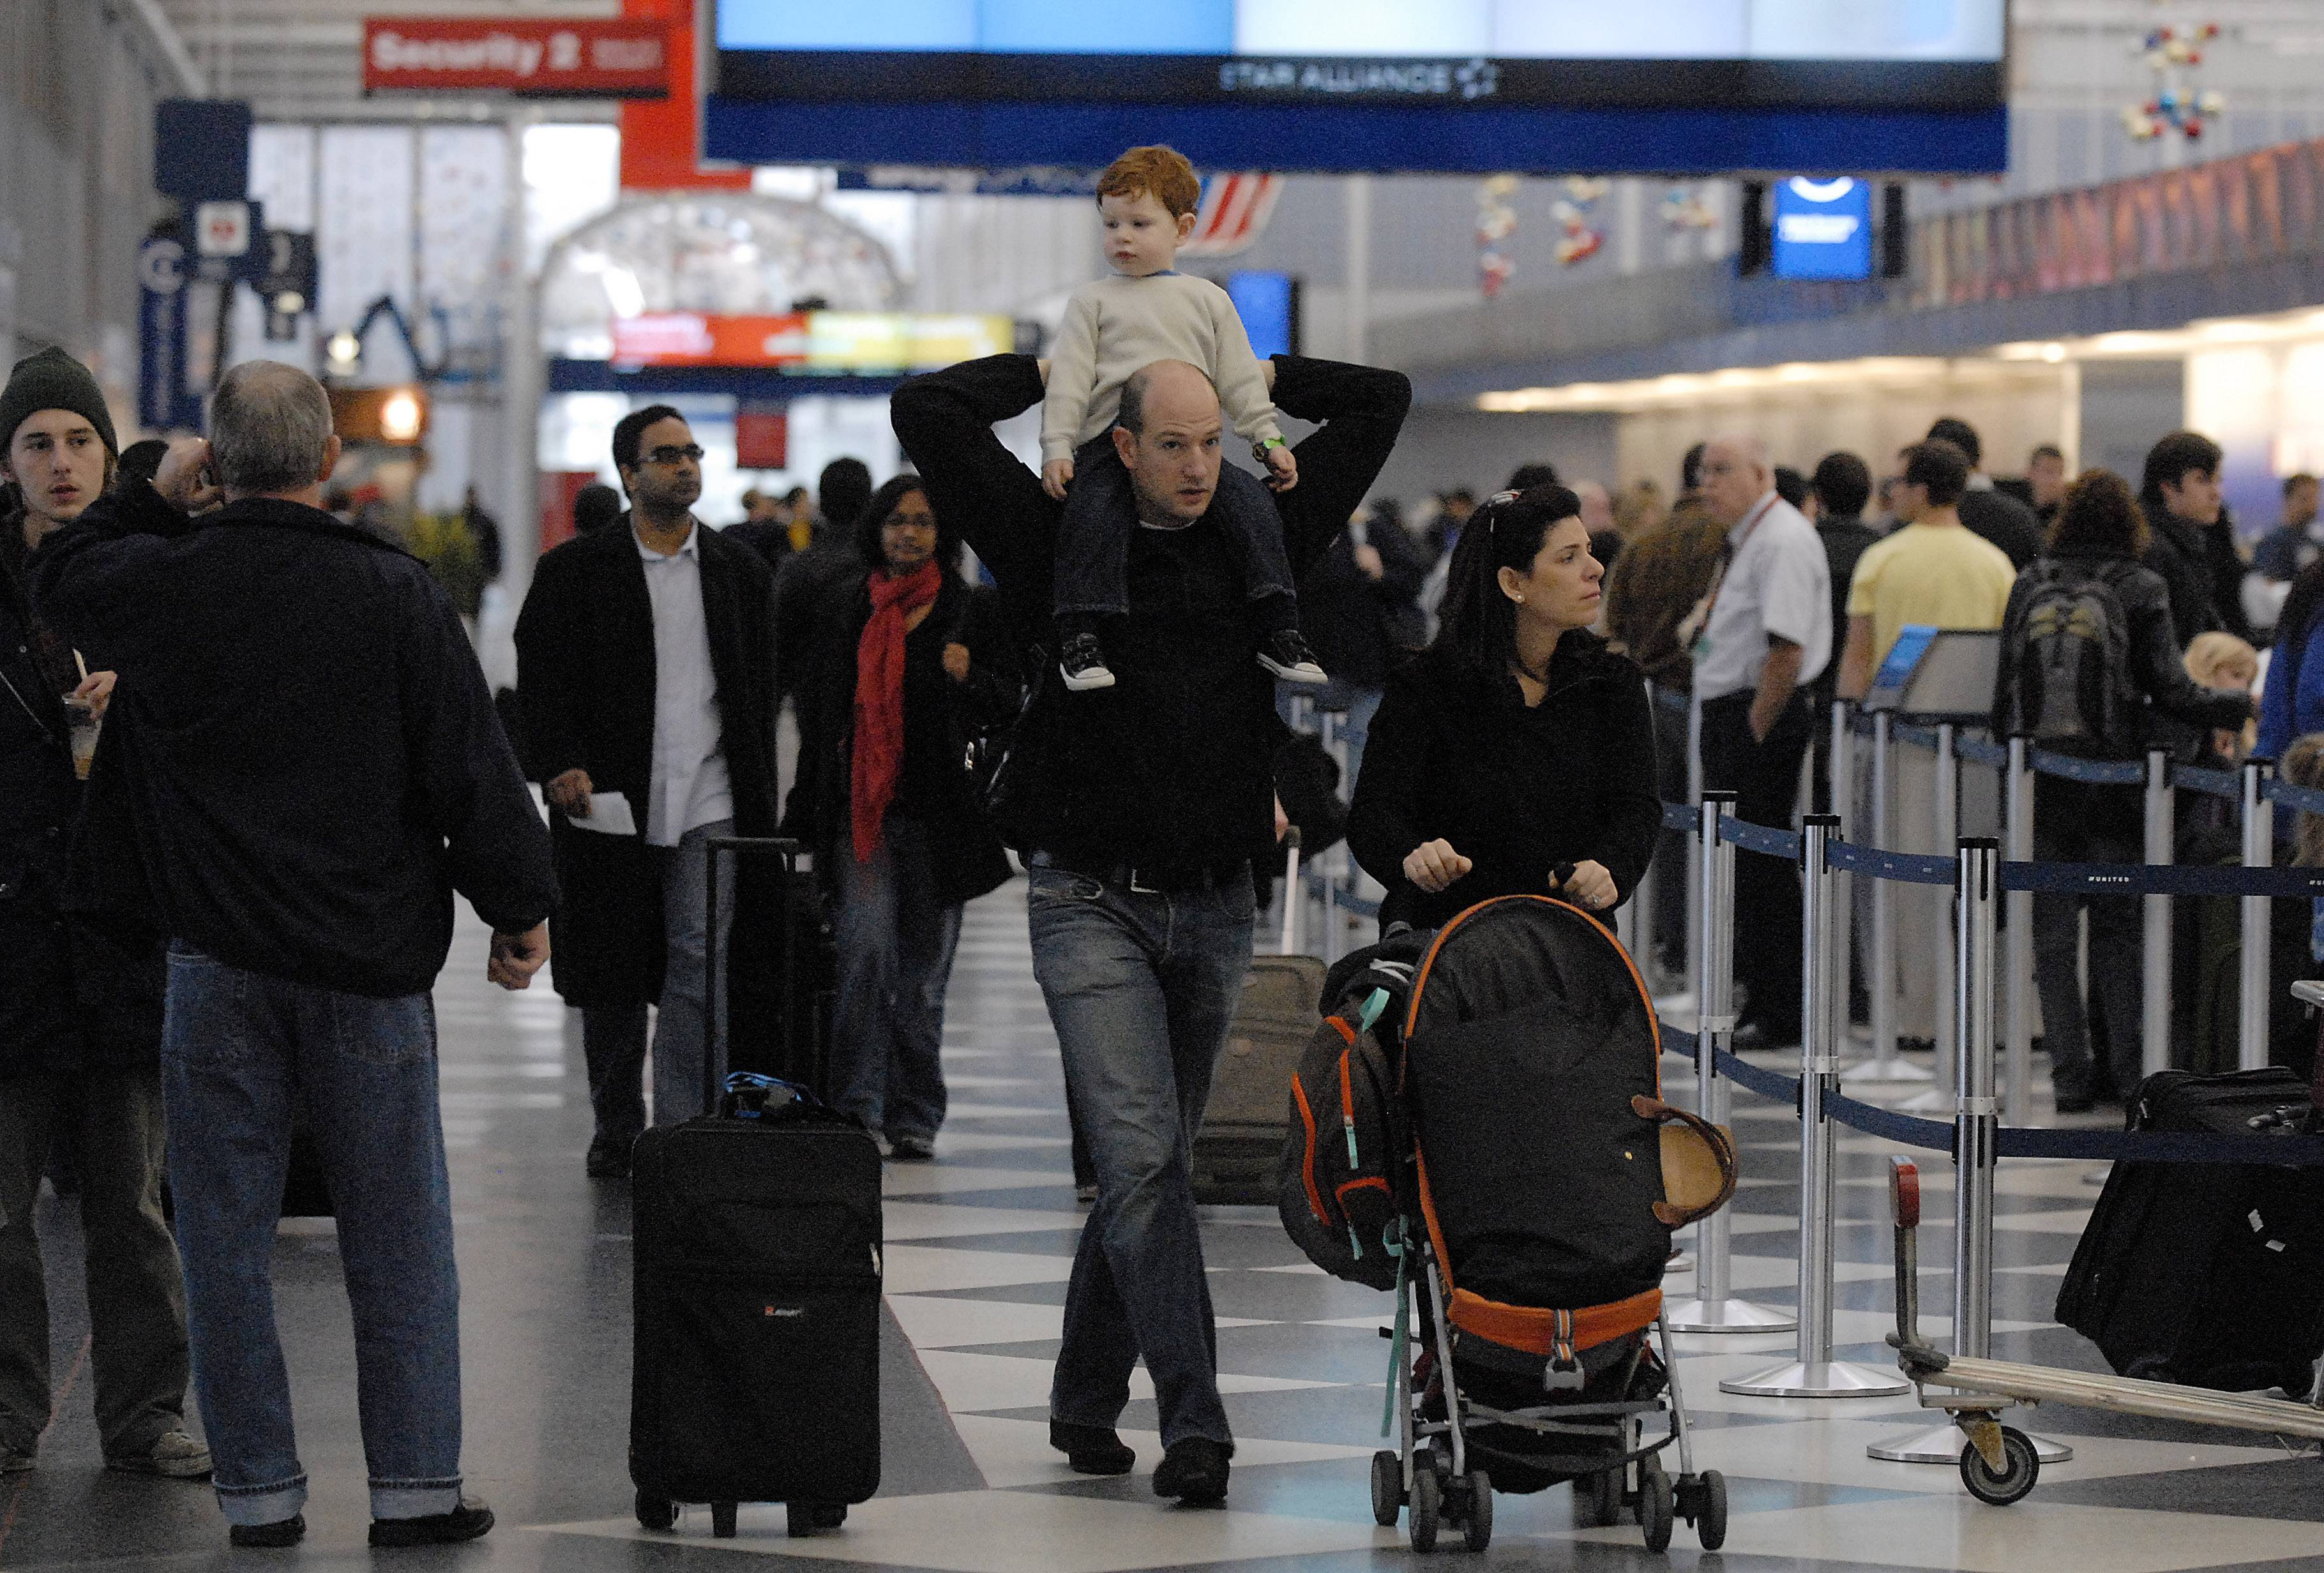 O'Hare takes back busiest airport title